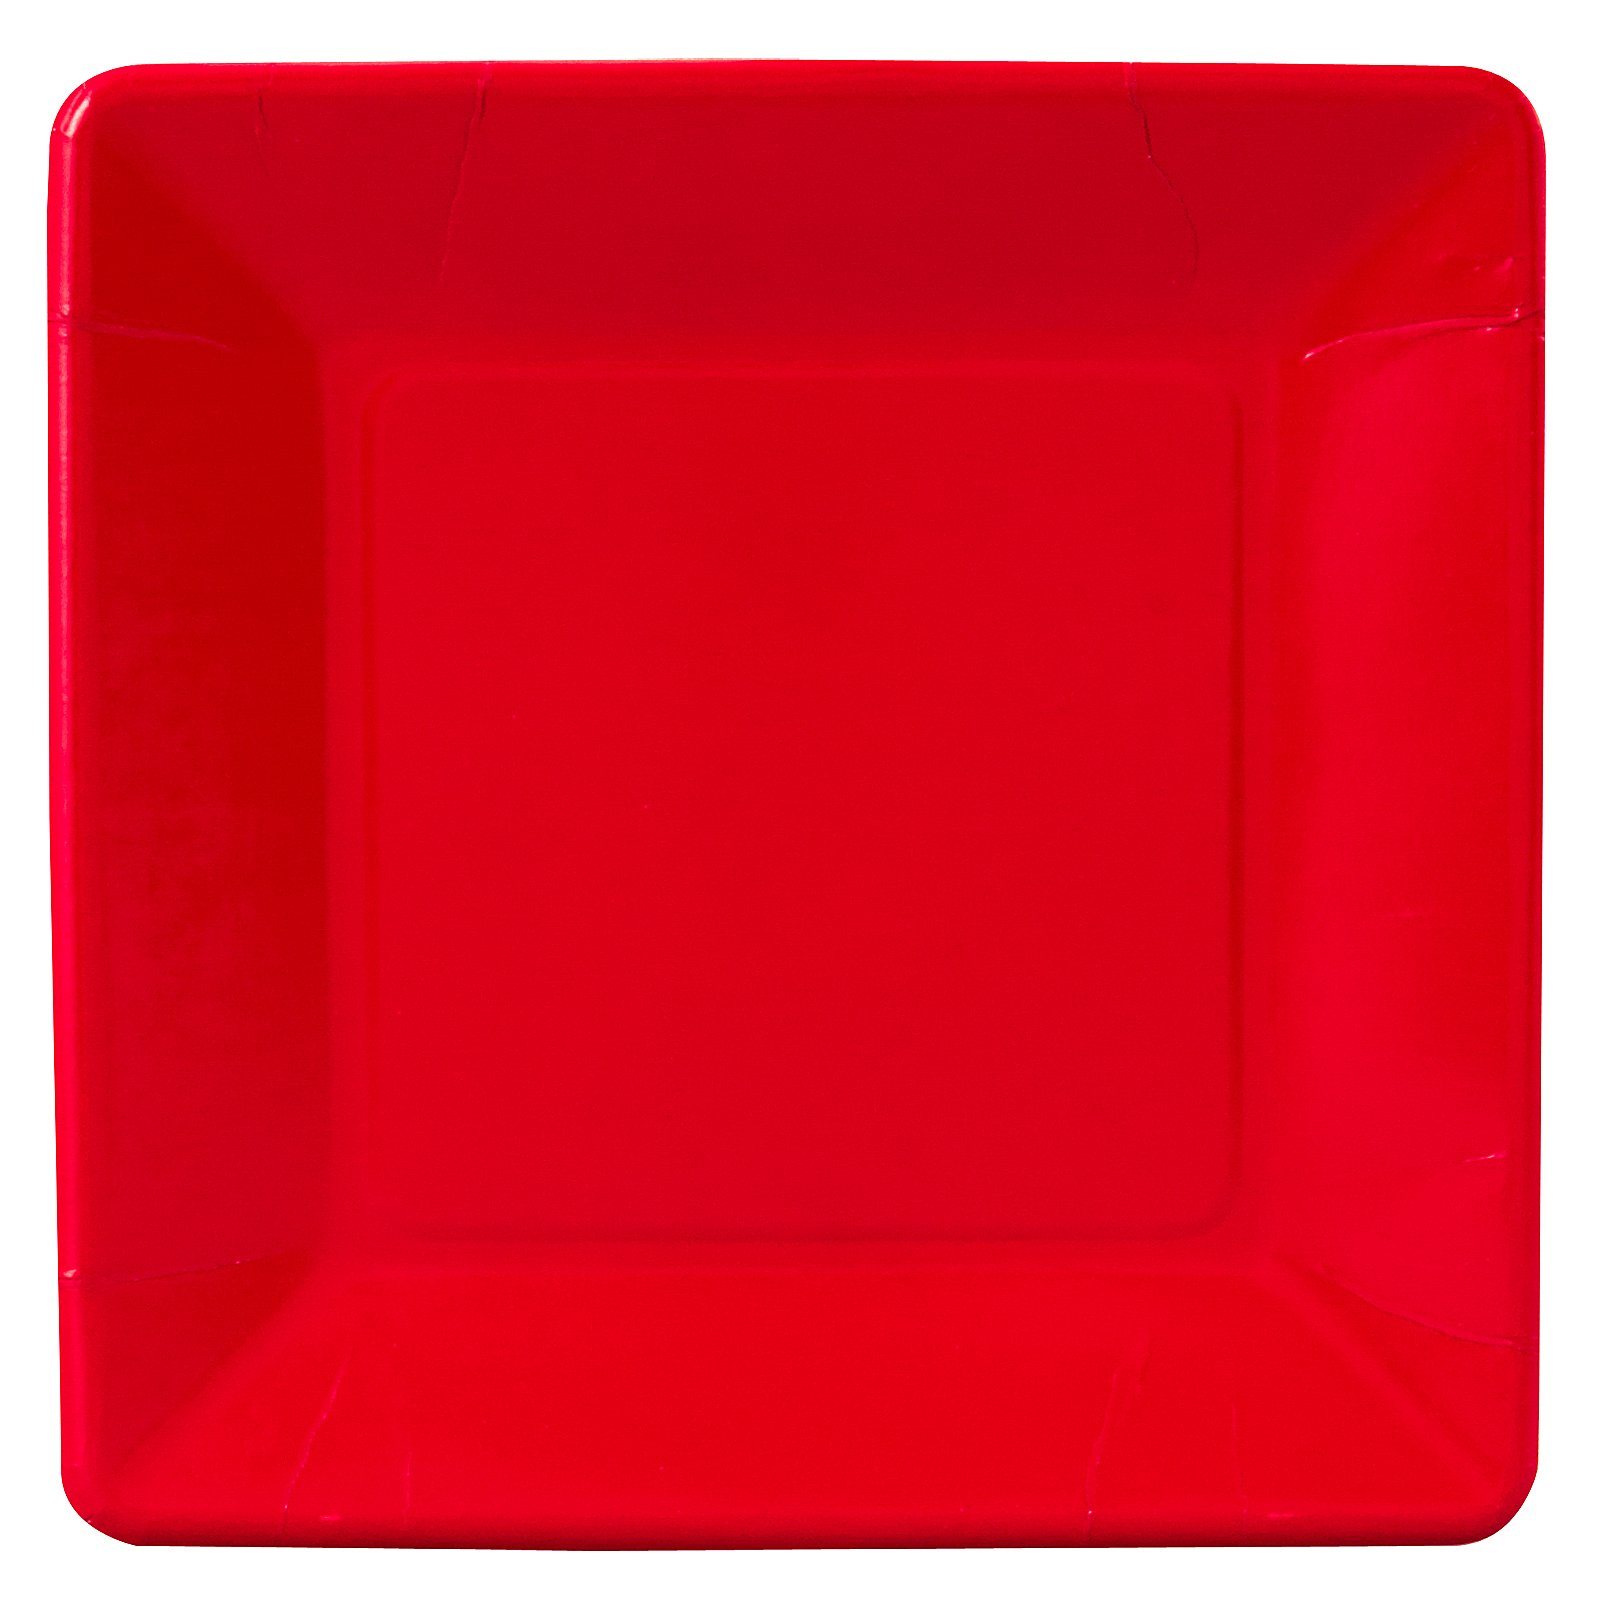 Classic Red (Red) Square Dinner Plates (18 count)